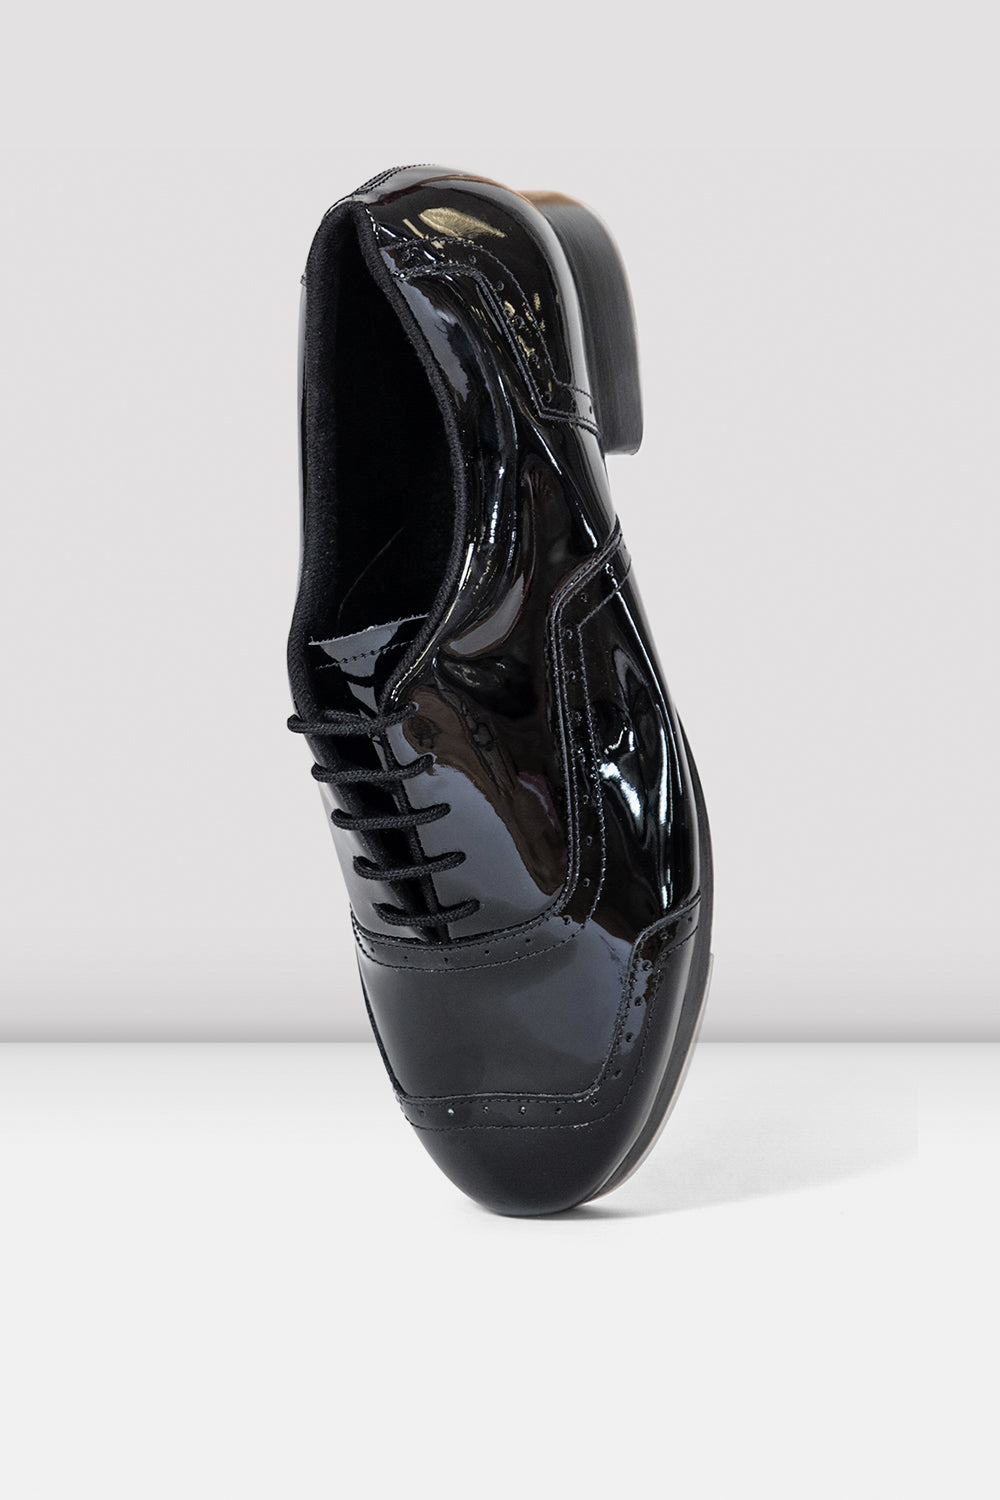 Mens Jason Samuels Smith Patent Tap Shoes - BLOCH US